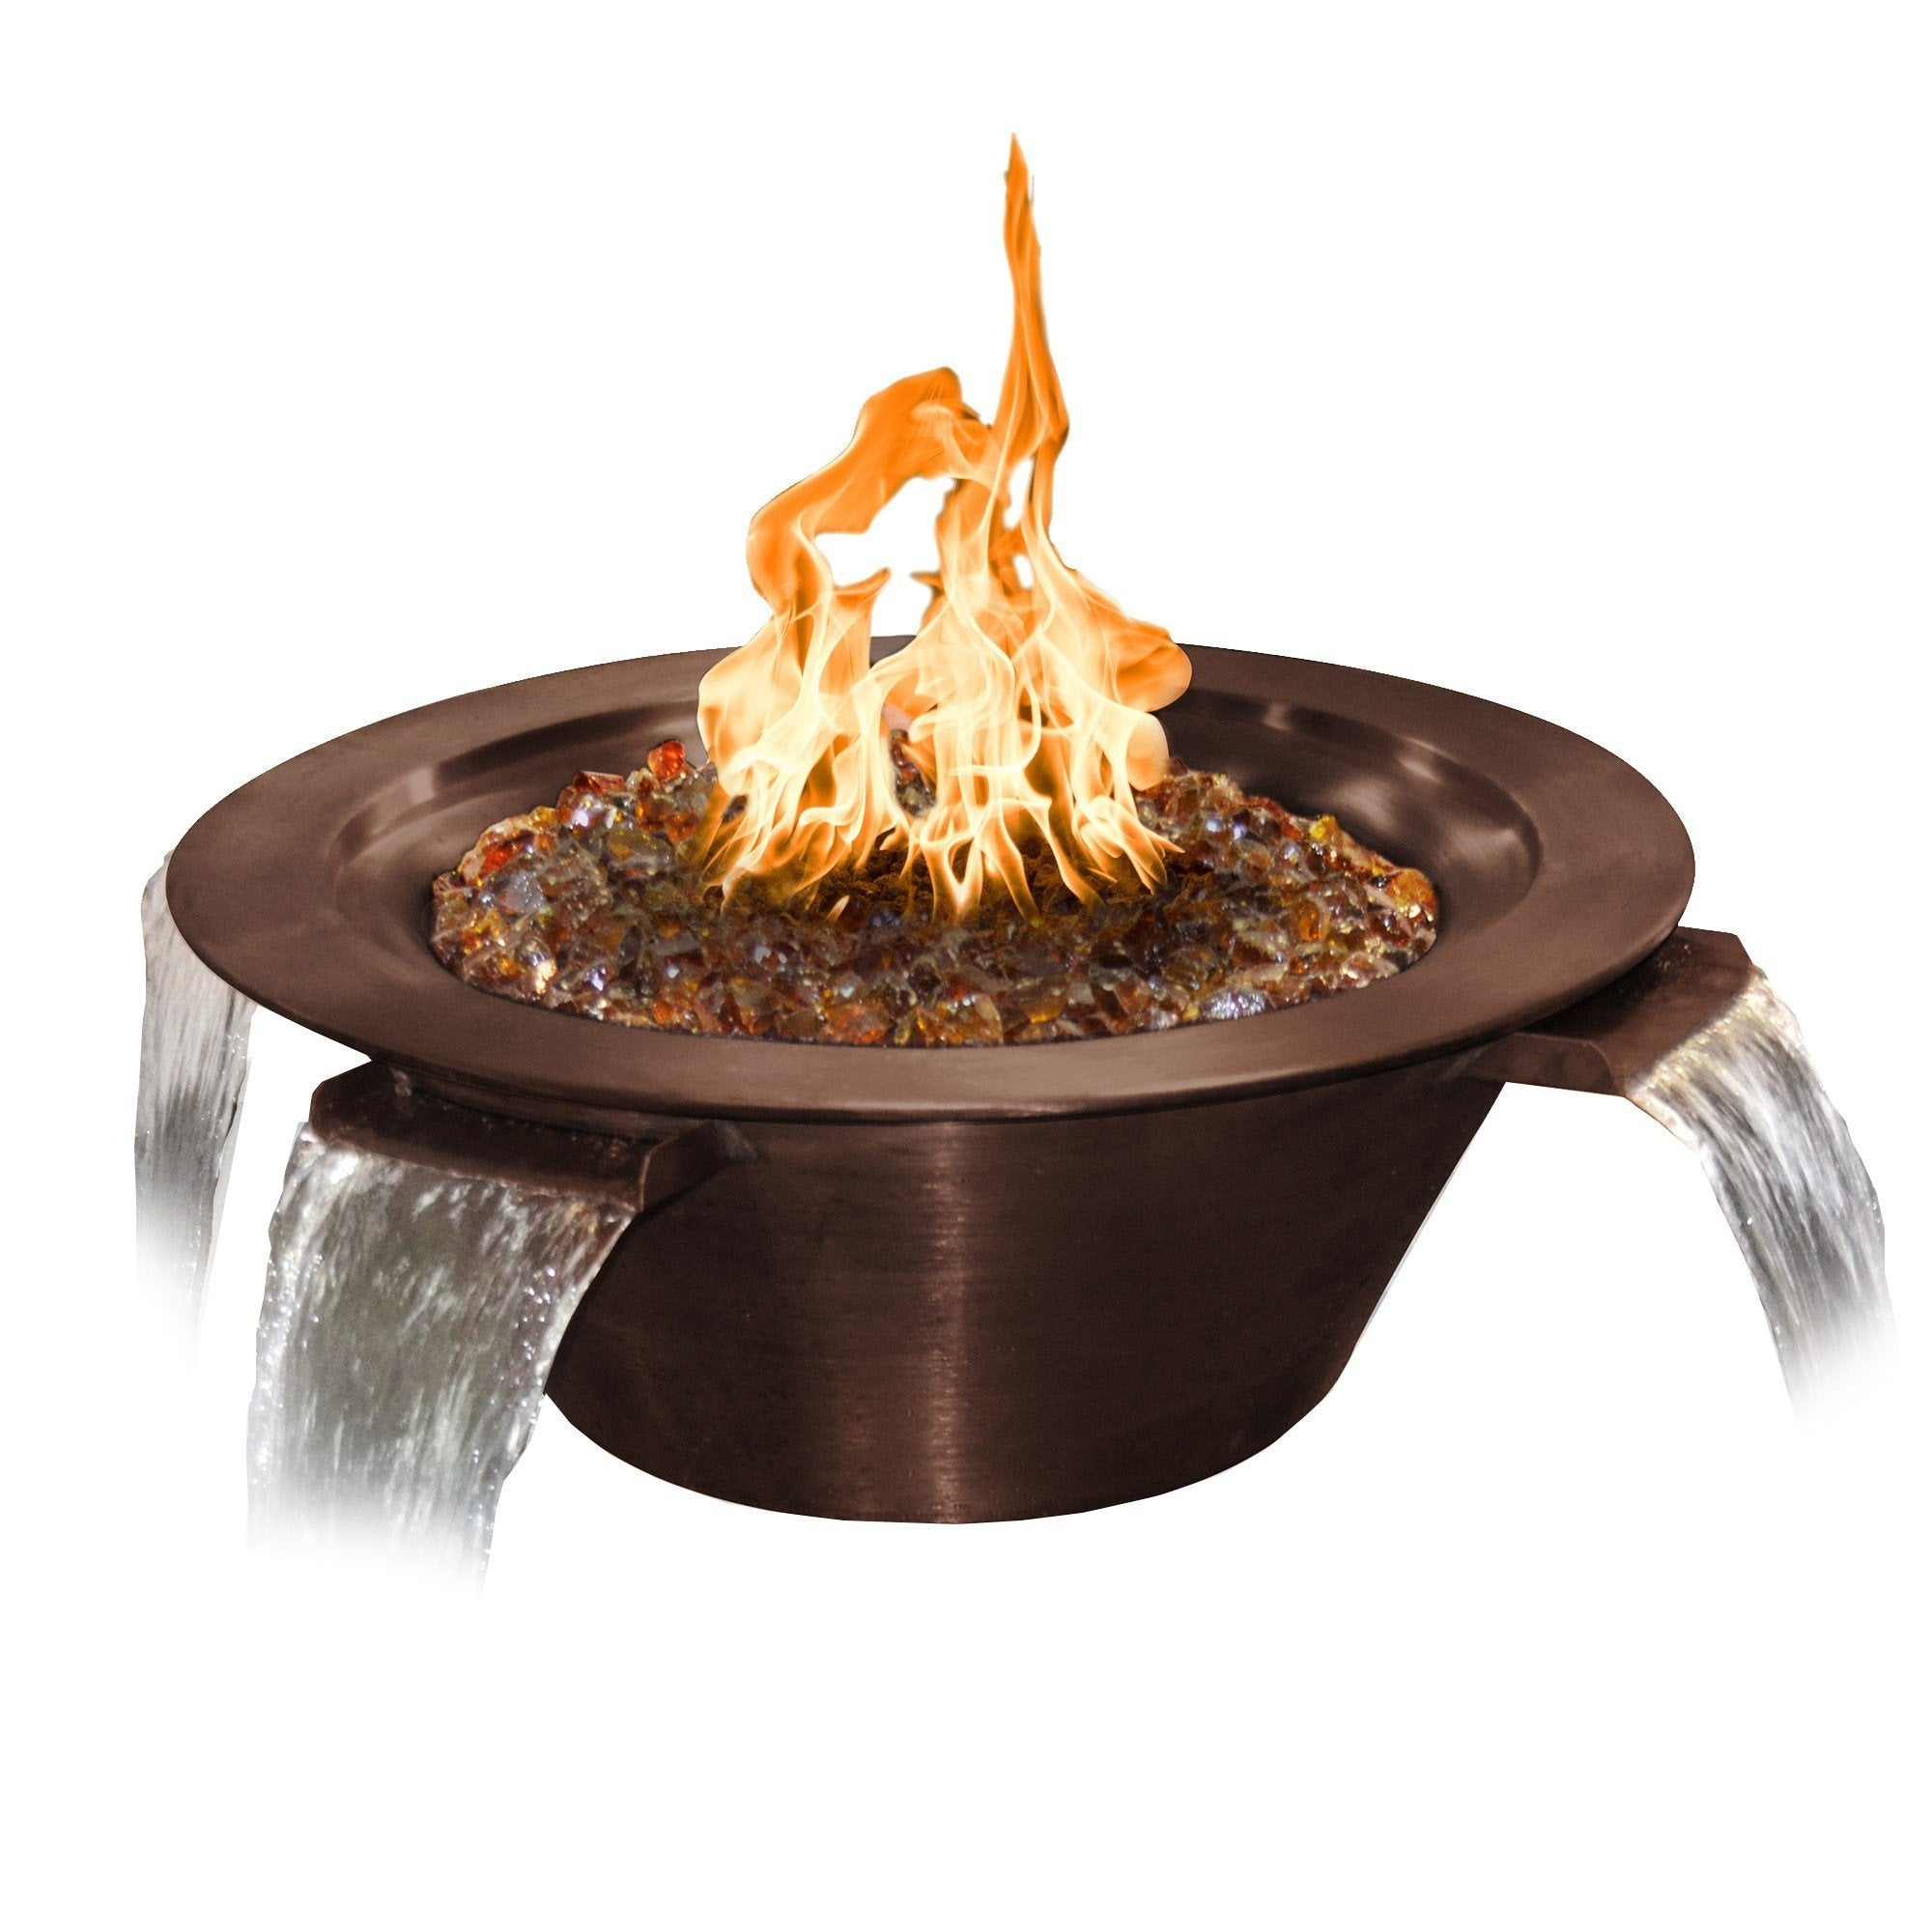 "TOP Fires by The Outdoor Plus Cazo 4-Way Copper Water & Fire Bowl 30"" - Fire Pit Oasis"